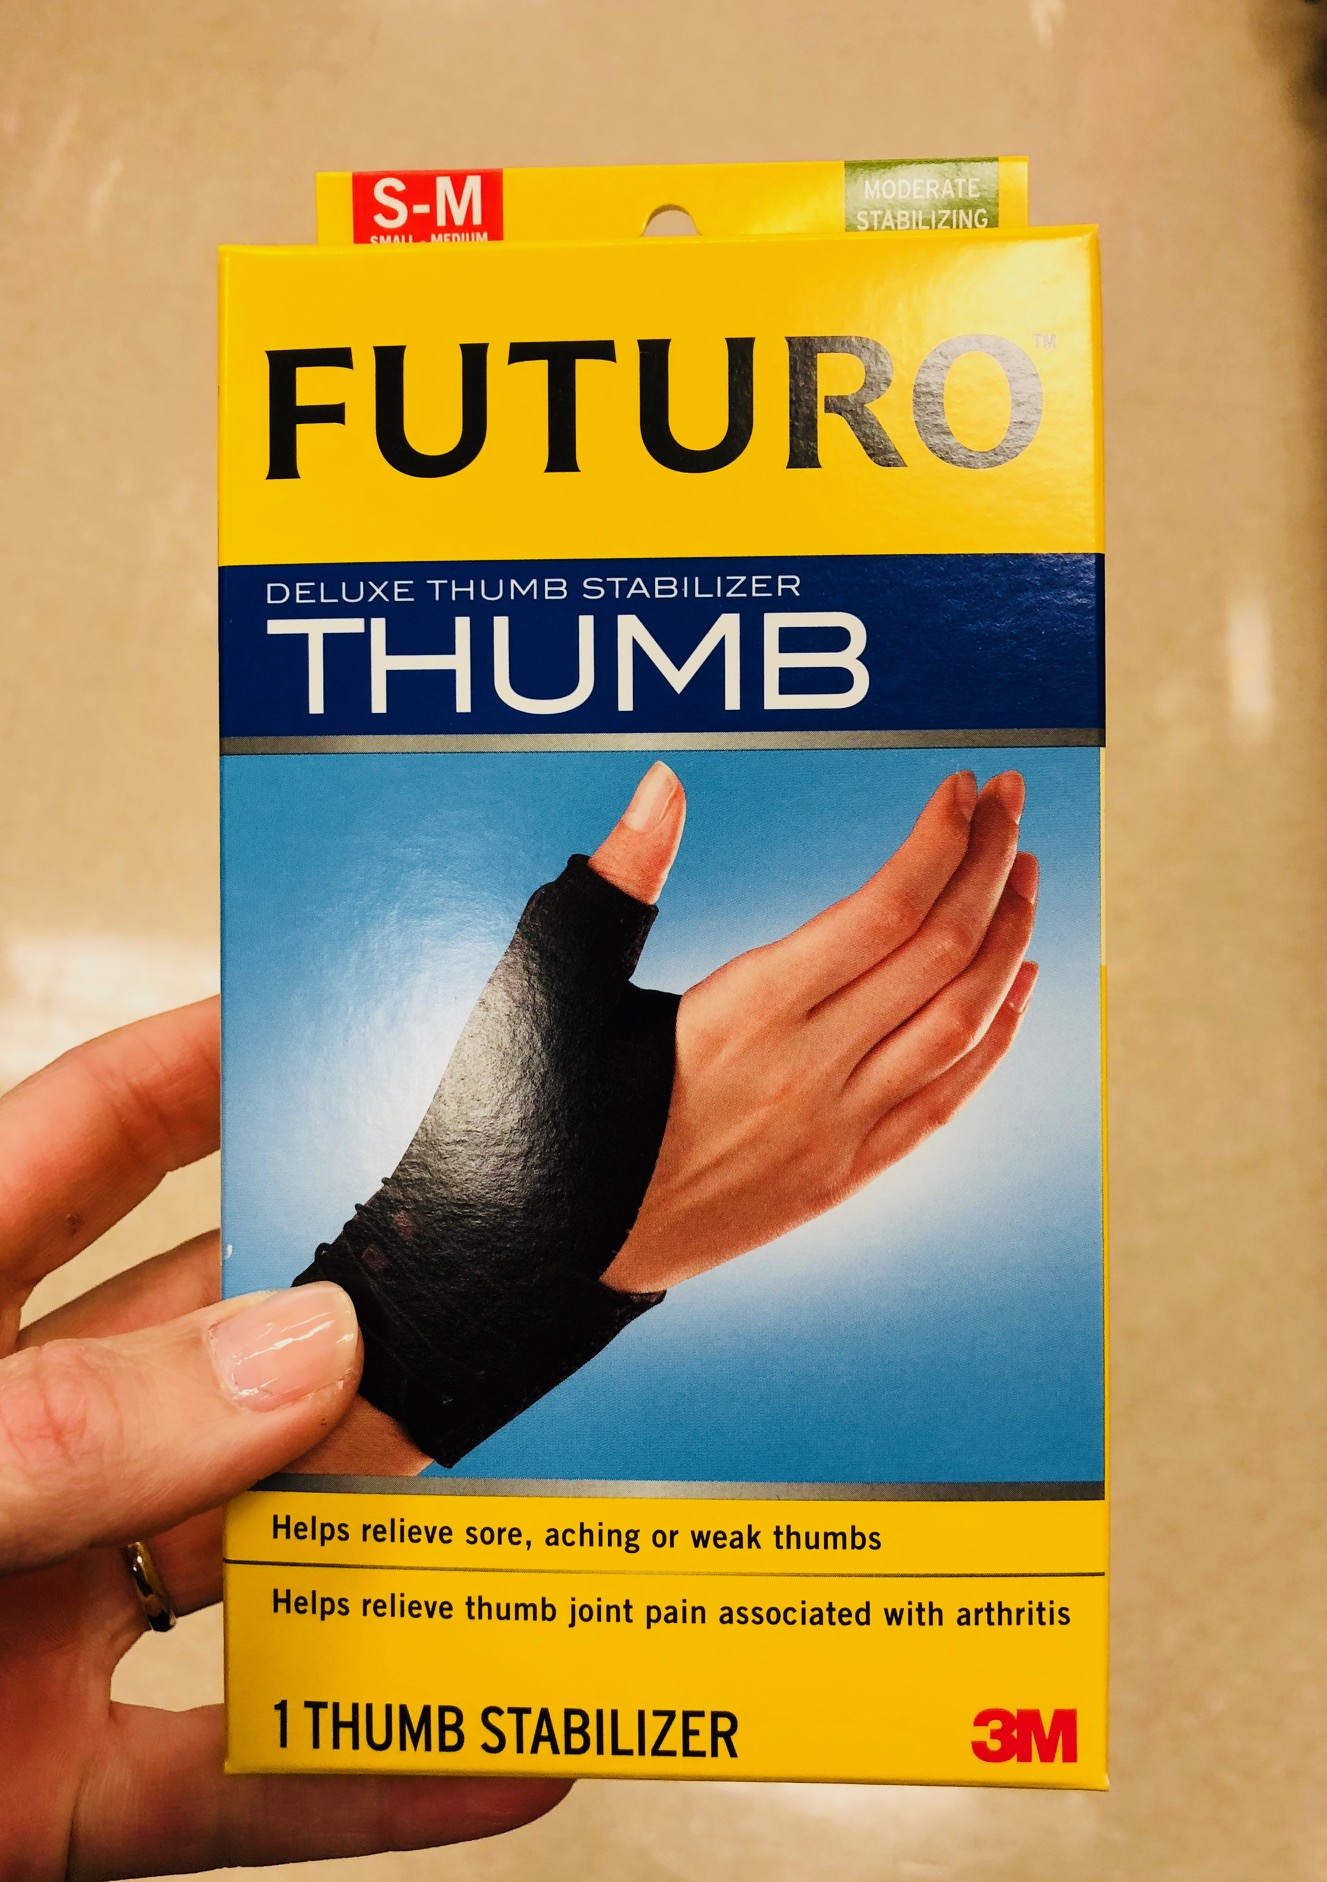 Standard thumb and wrist braces can be used at night to rest overuse injuries.